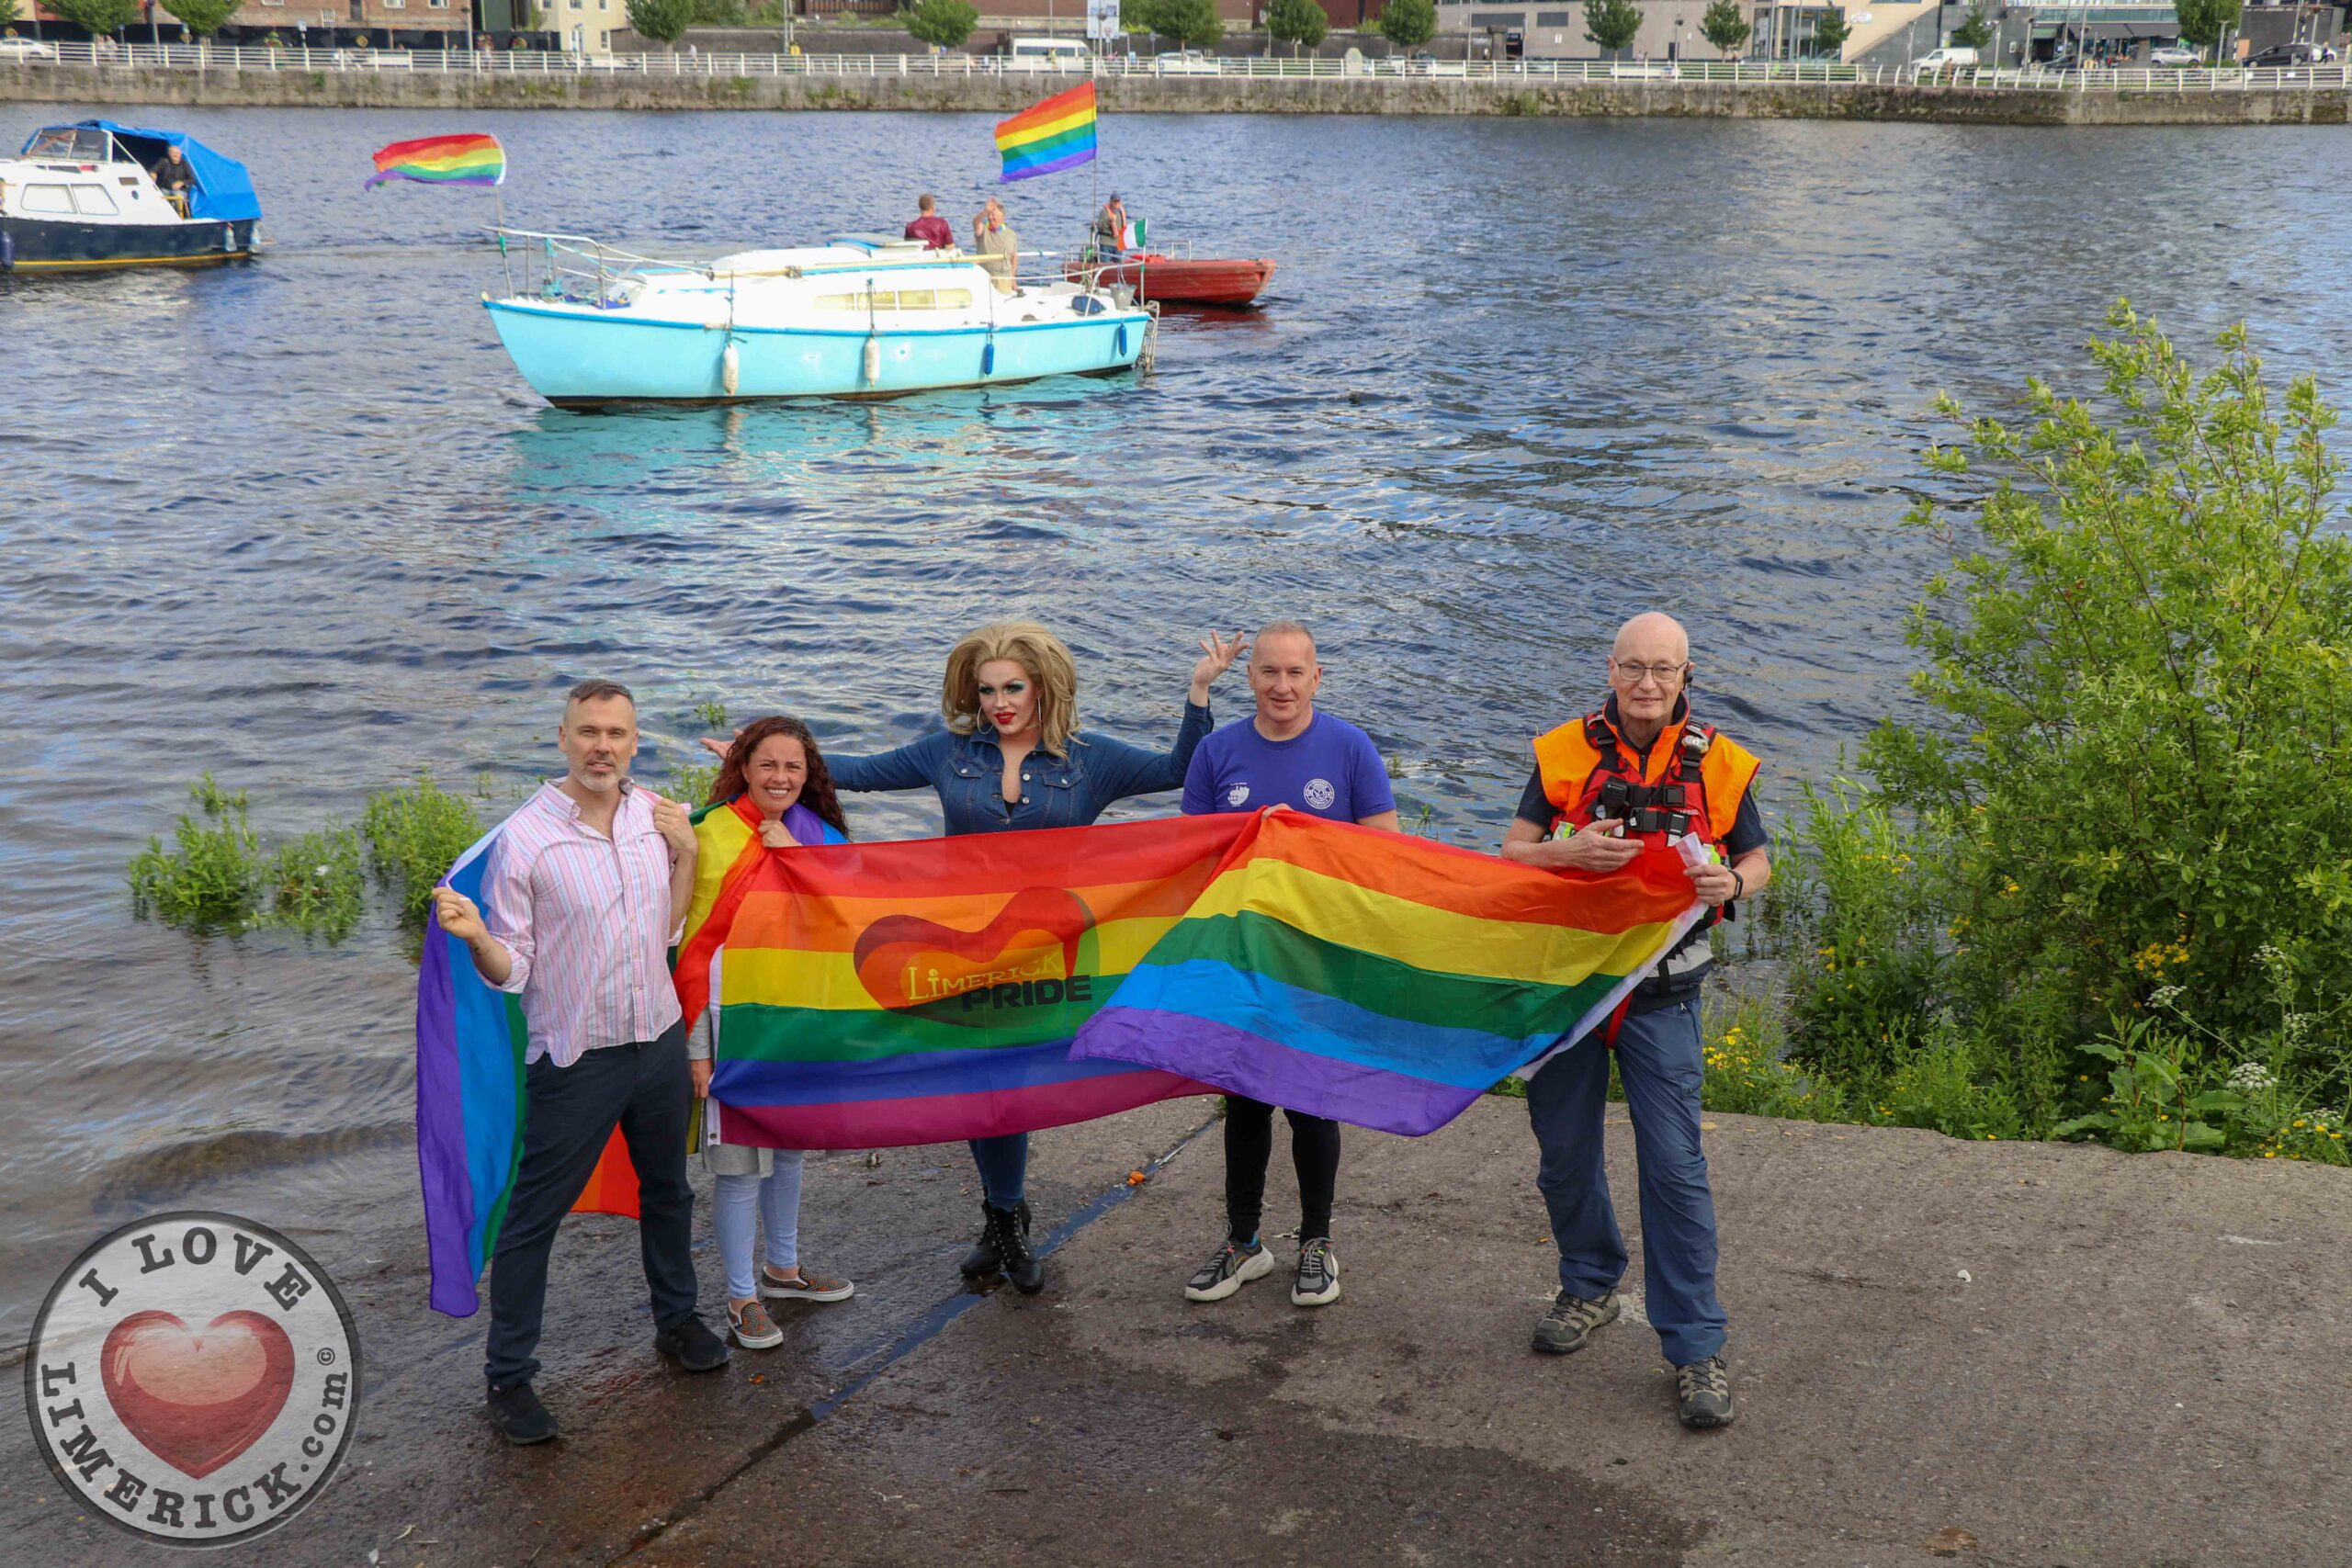 On Sunday, July 4, the Pride festivities will kick off with the Rainbow River Parade. Pictured are Richard Lynch, PRO Limerick Pride, Lisa Daly, Chairperson Limerick Pride, Carrie Deway, Alan Gleeson, Limerick Narwhals and Tom Sheehan, Limerick Suicide Watch. Picture: Farhan Saeed/ilovelimerick